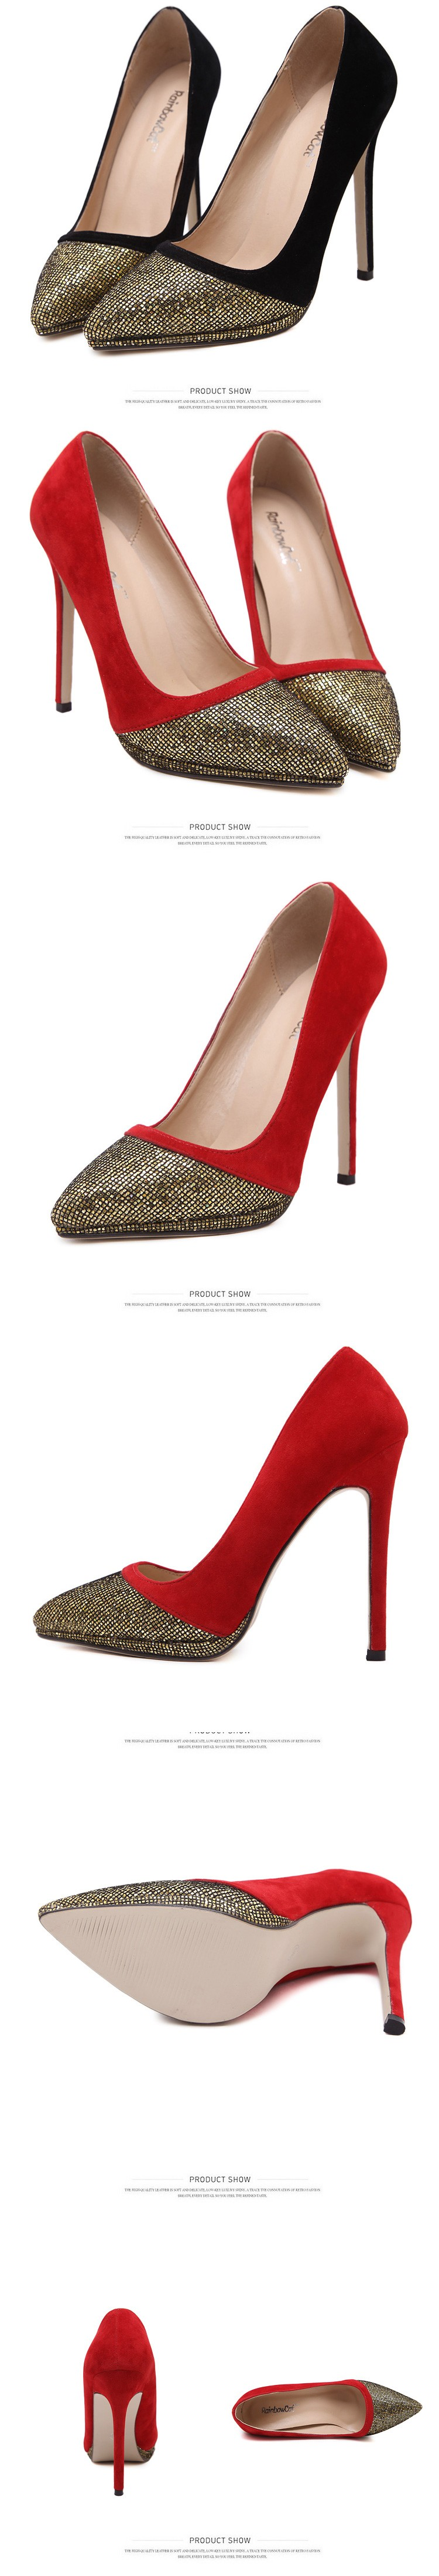 2016 New Fashion Women Pumps Sequined Thin High Heel Pumps Shoes For Women Pointed Toe Sexy Party Wedding Woman Shoes ZX2.5